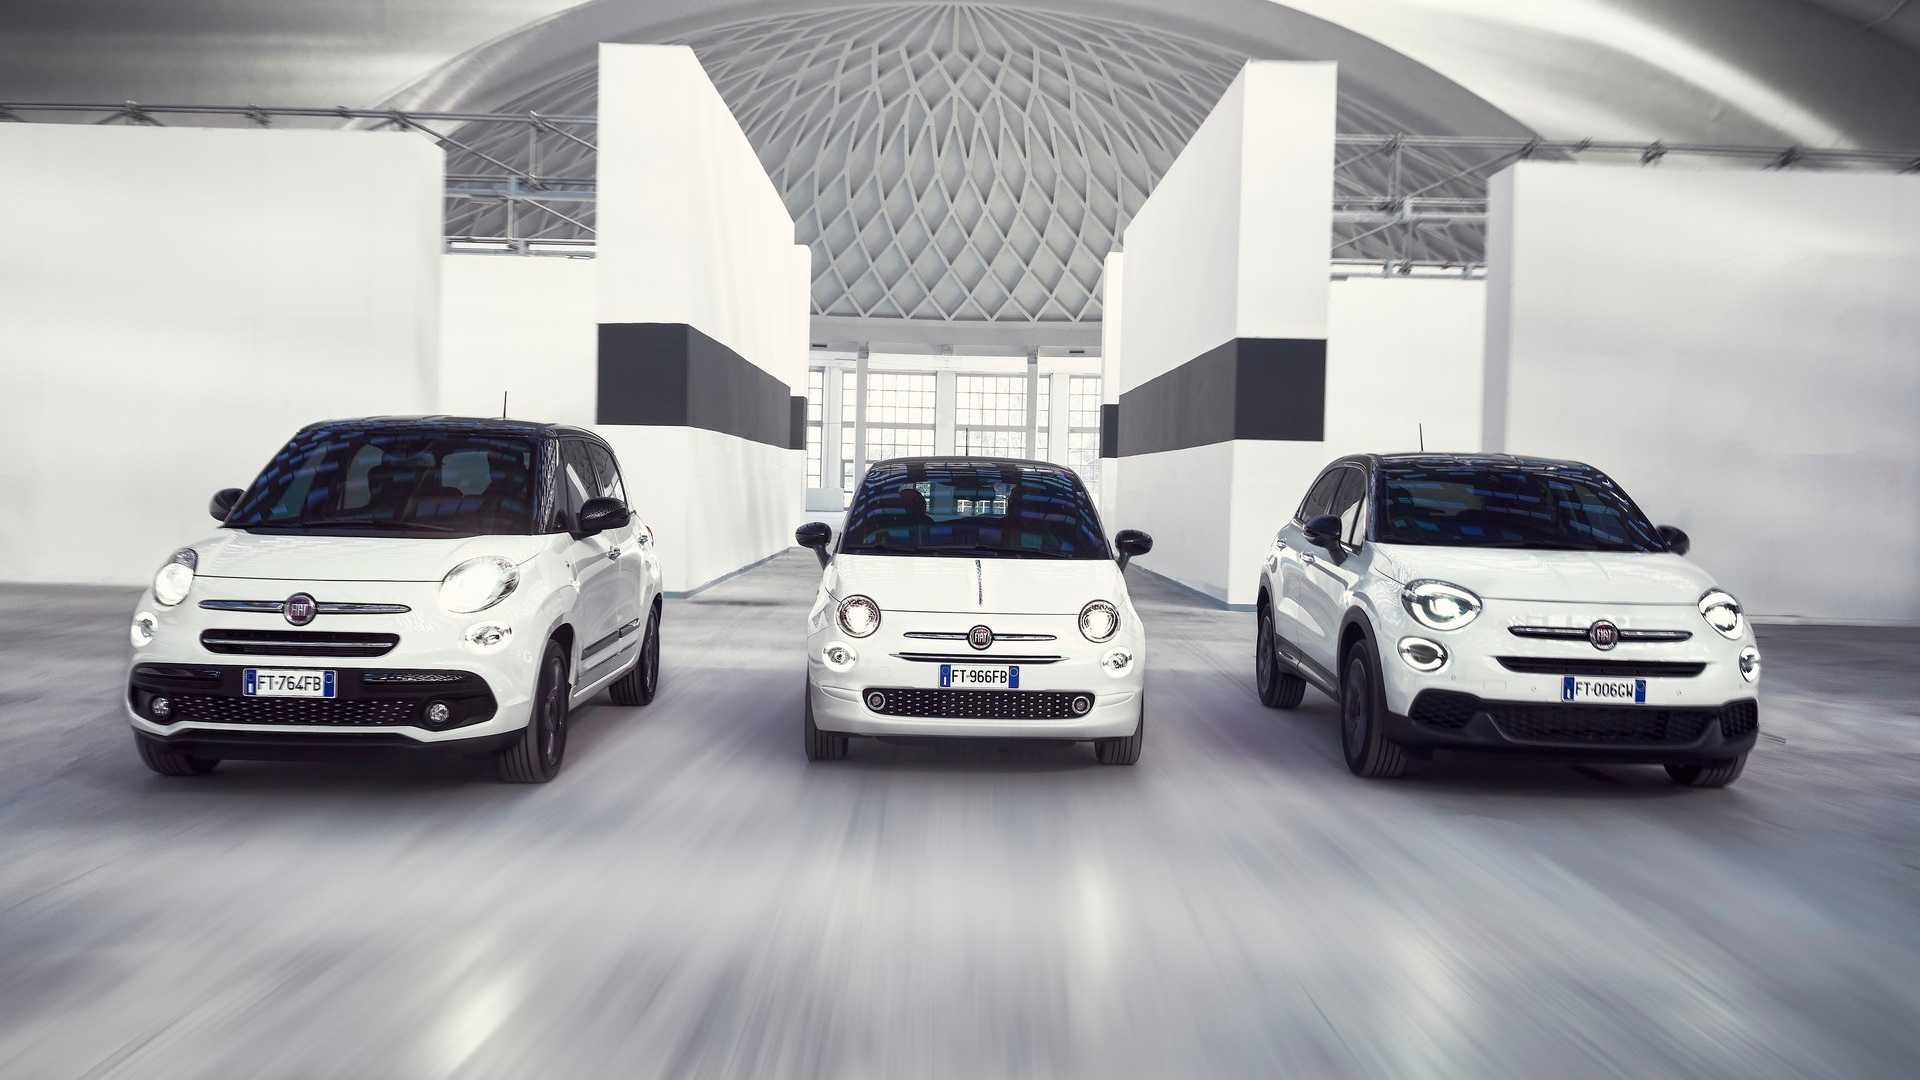 5f66ace66 Fiat Marks 120th Anniversary With Special 500, 500X, 500L